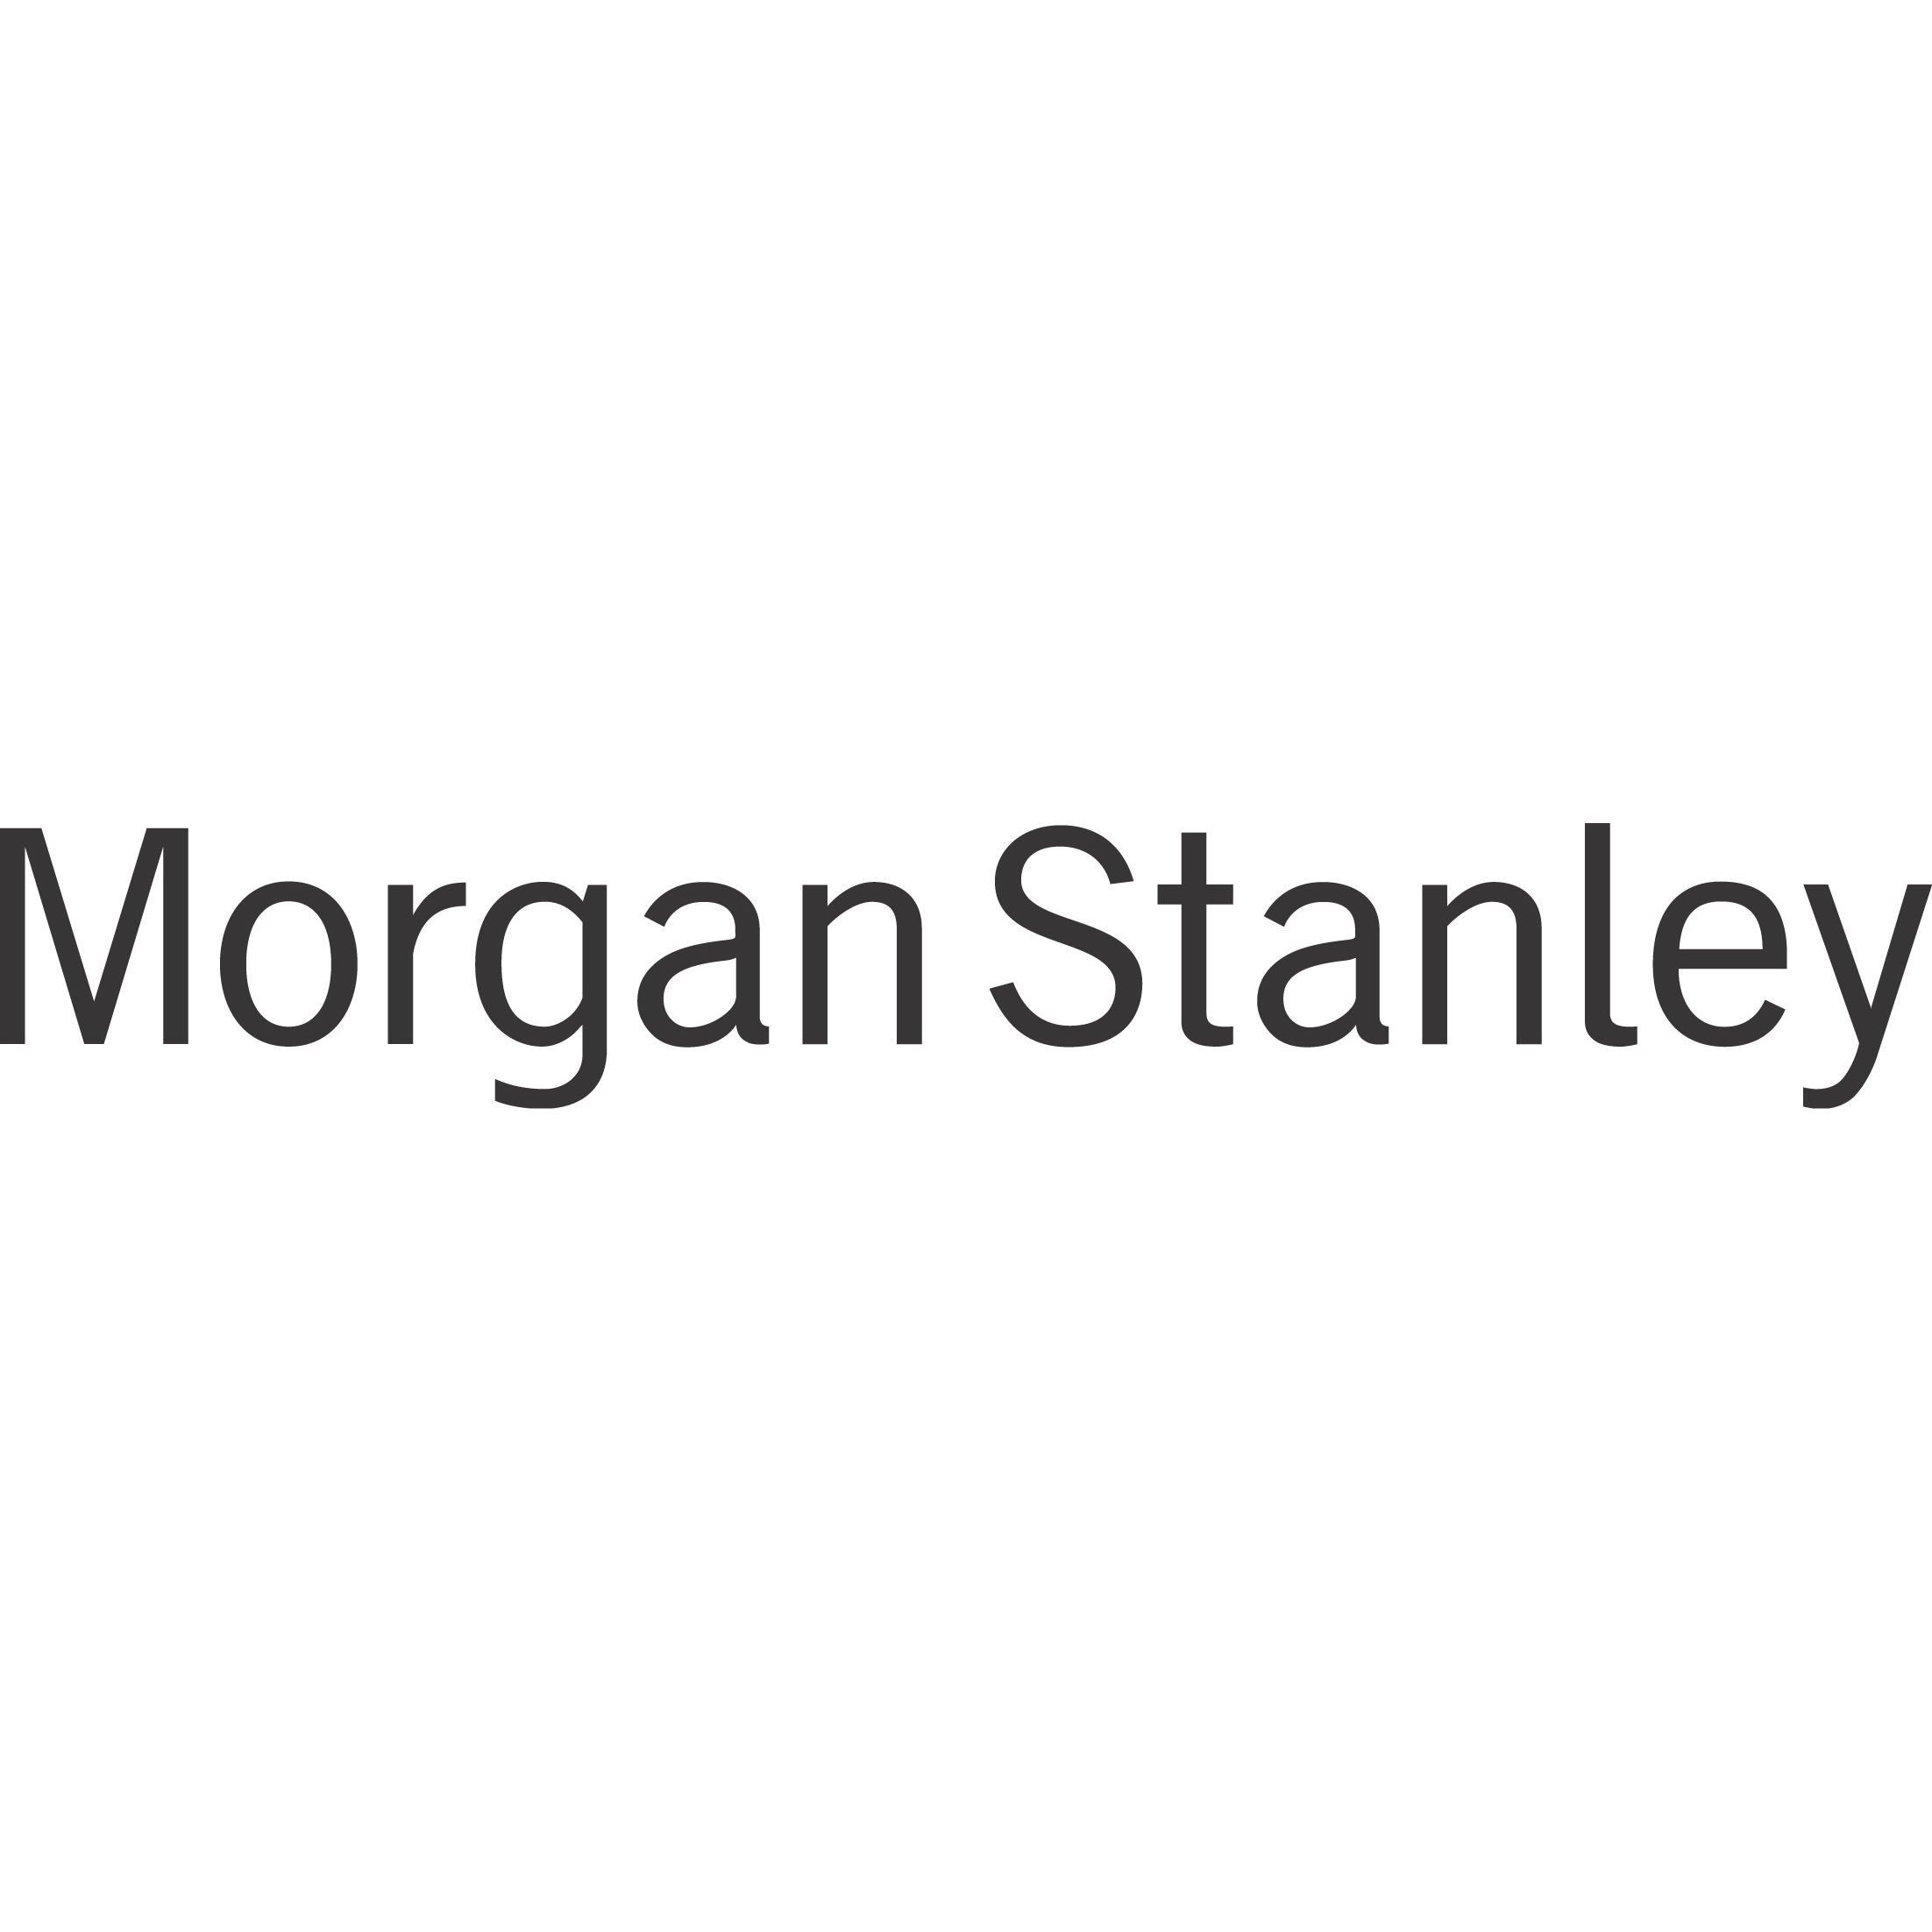 David McLaughlin - Morgan Stanley